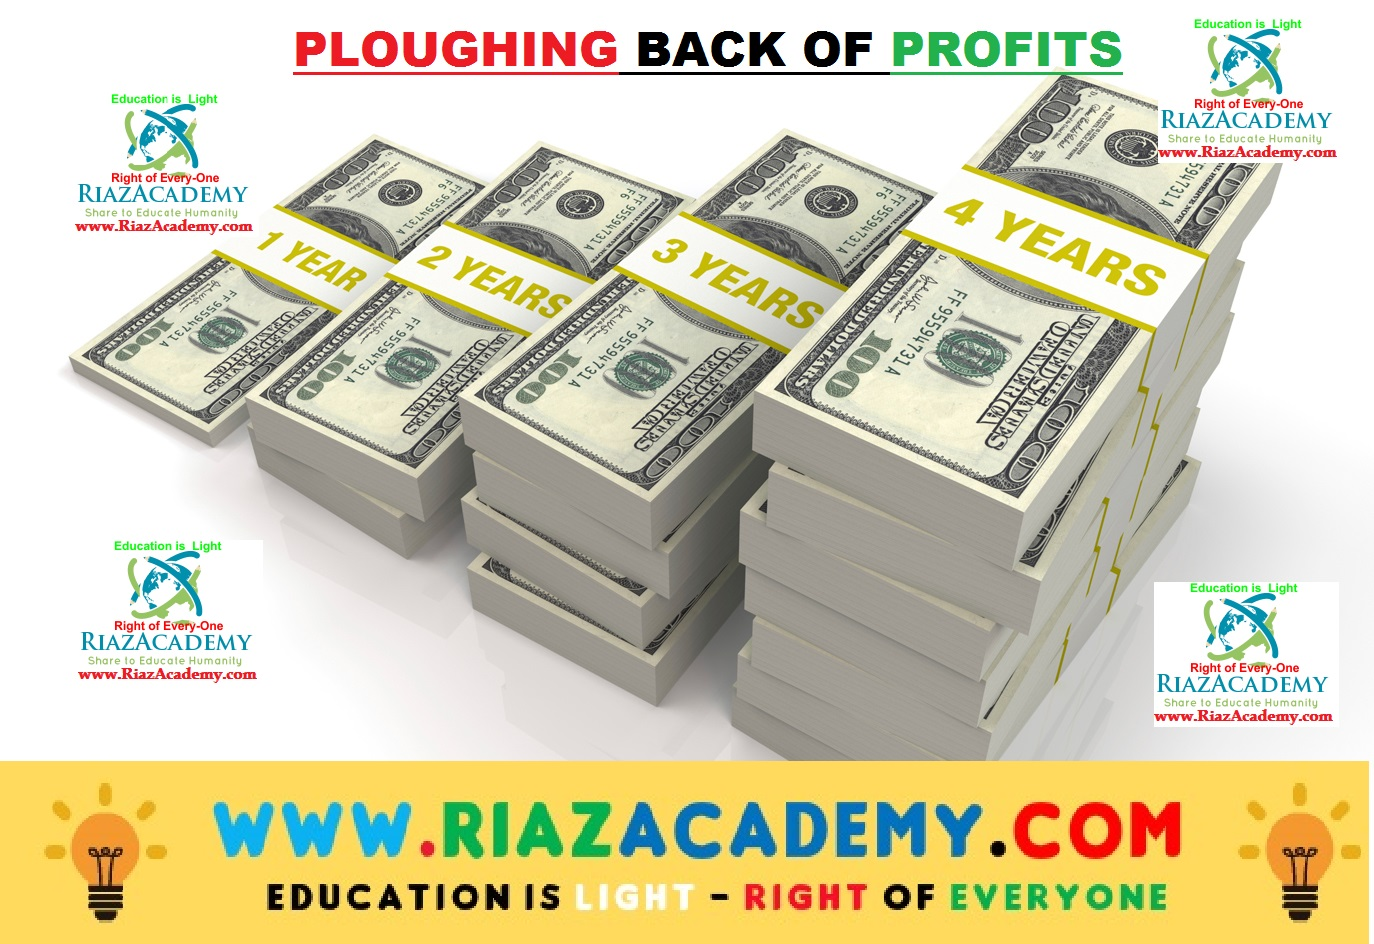 Ploughing back of Profits - Advantages and Disadvantages